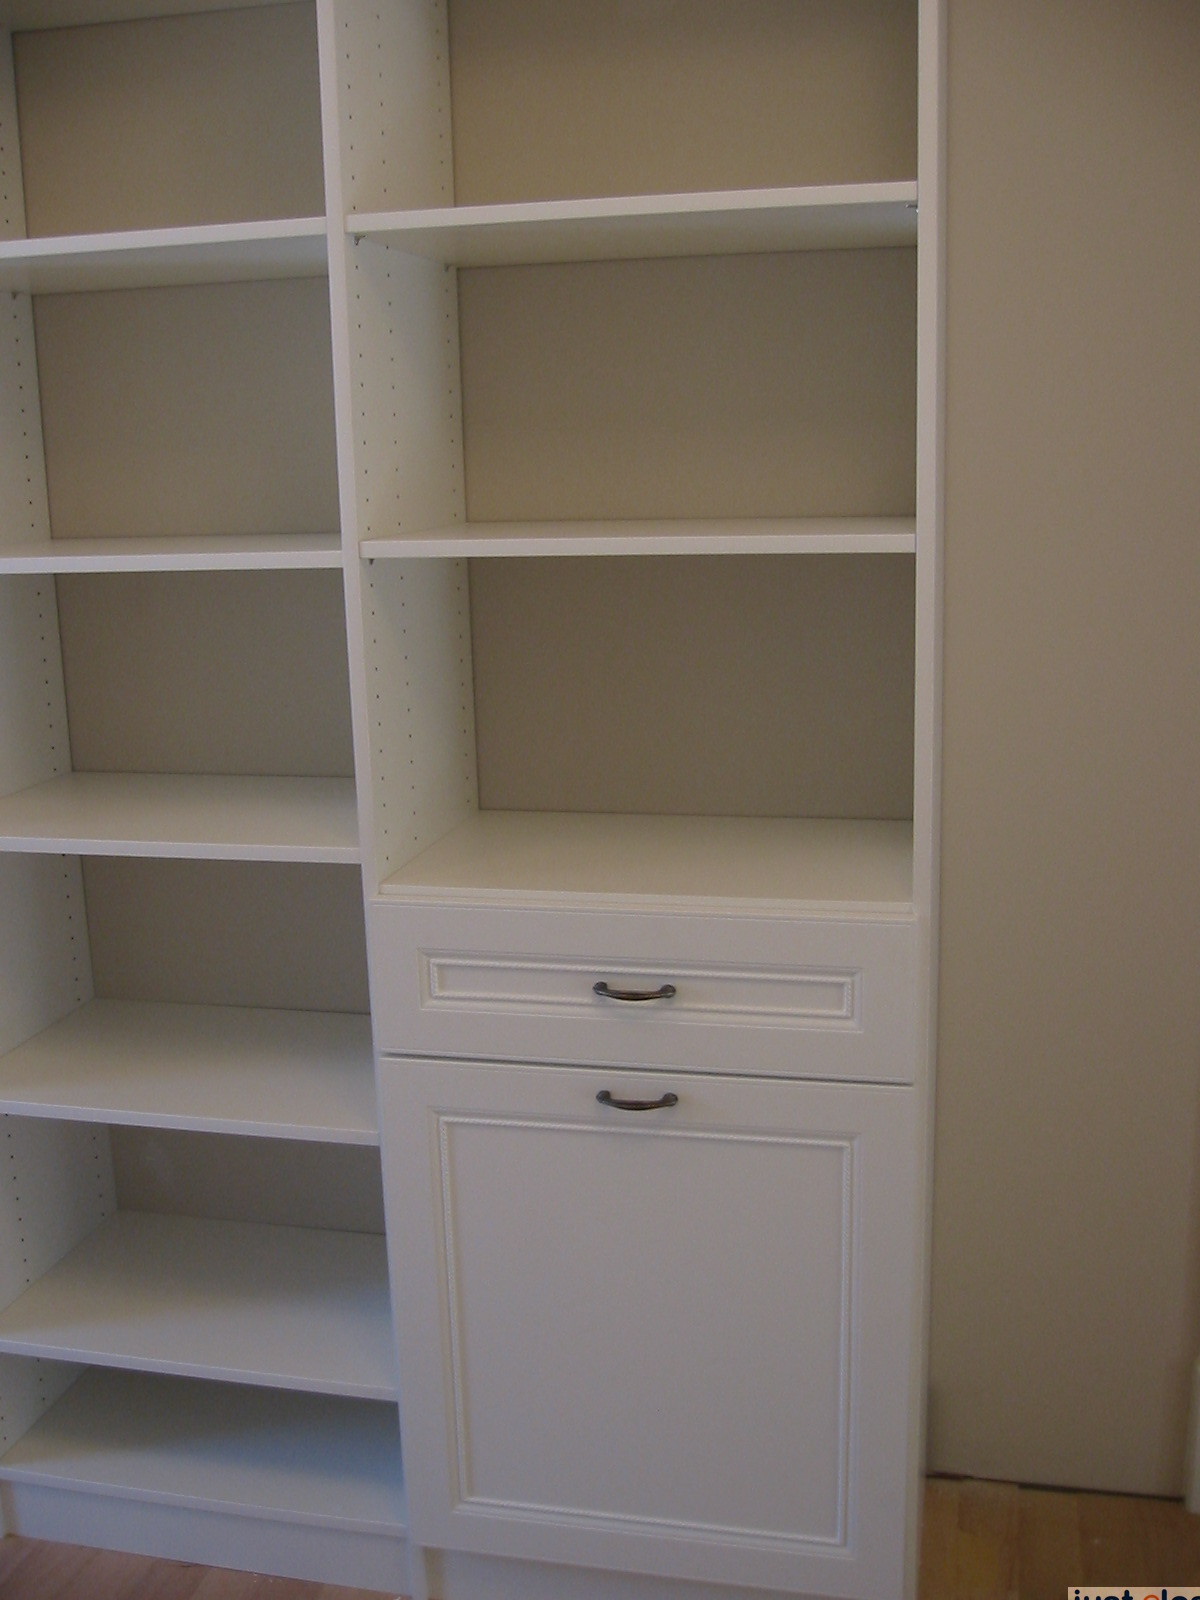 Built-in drawers in clothes closet system - Just Closets